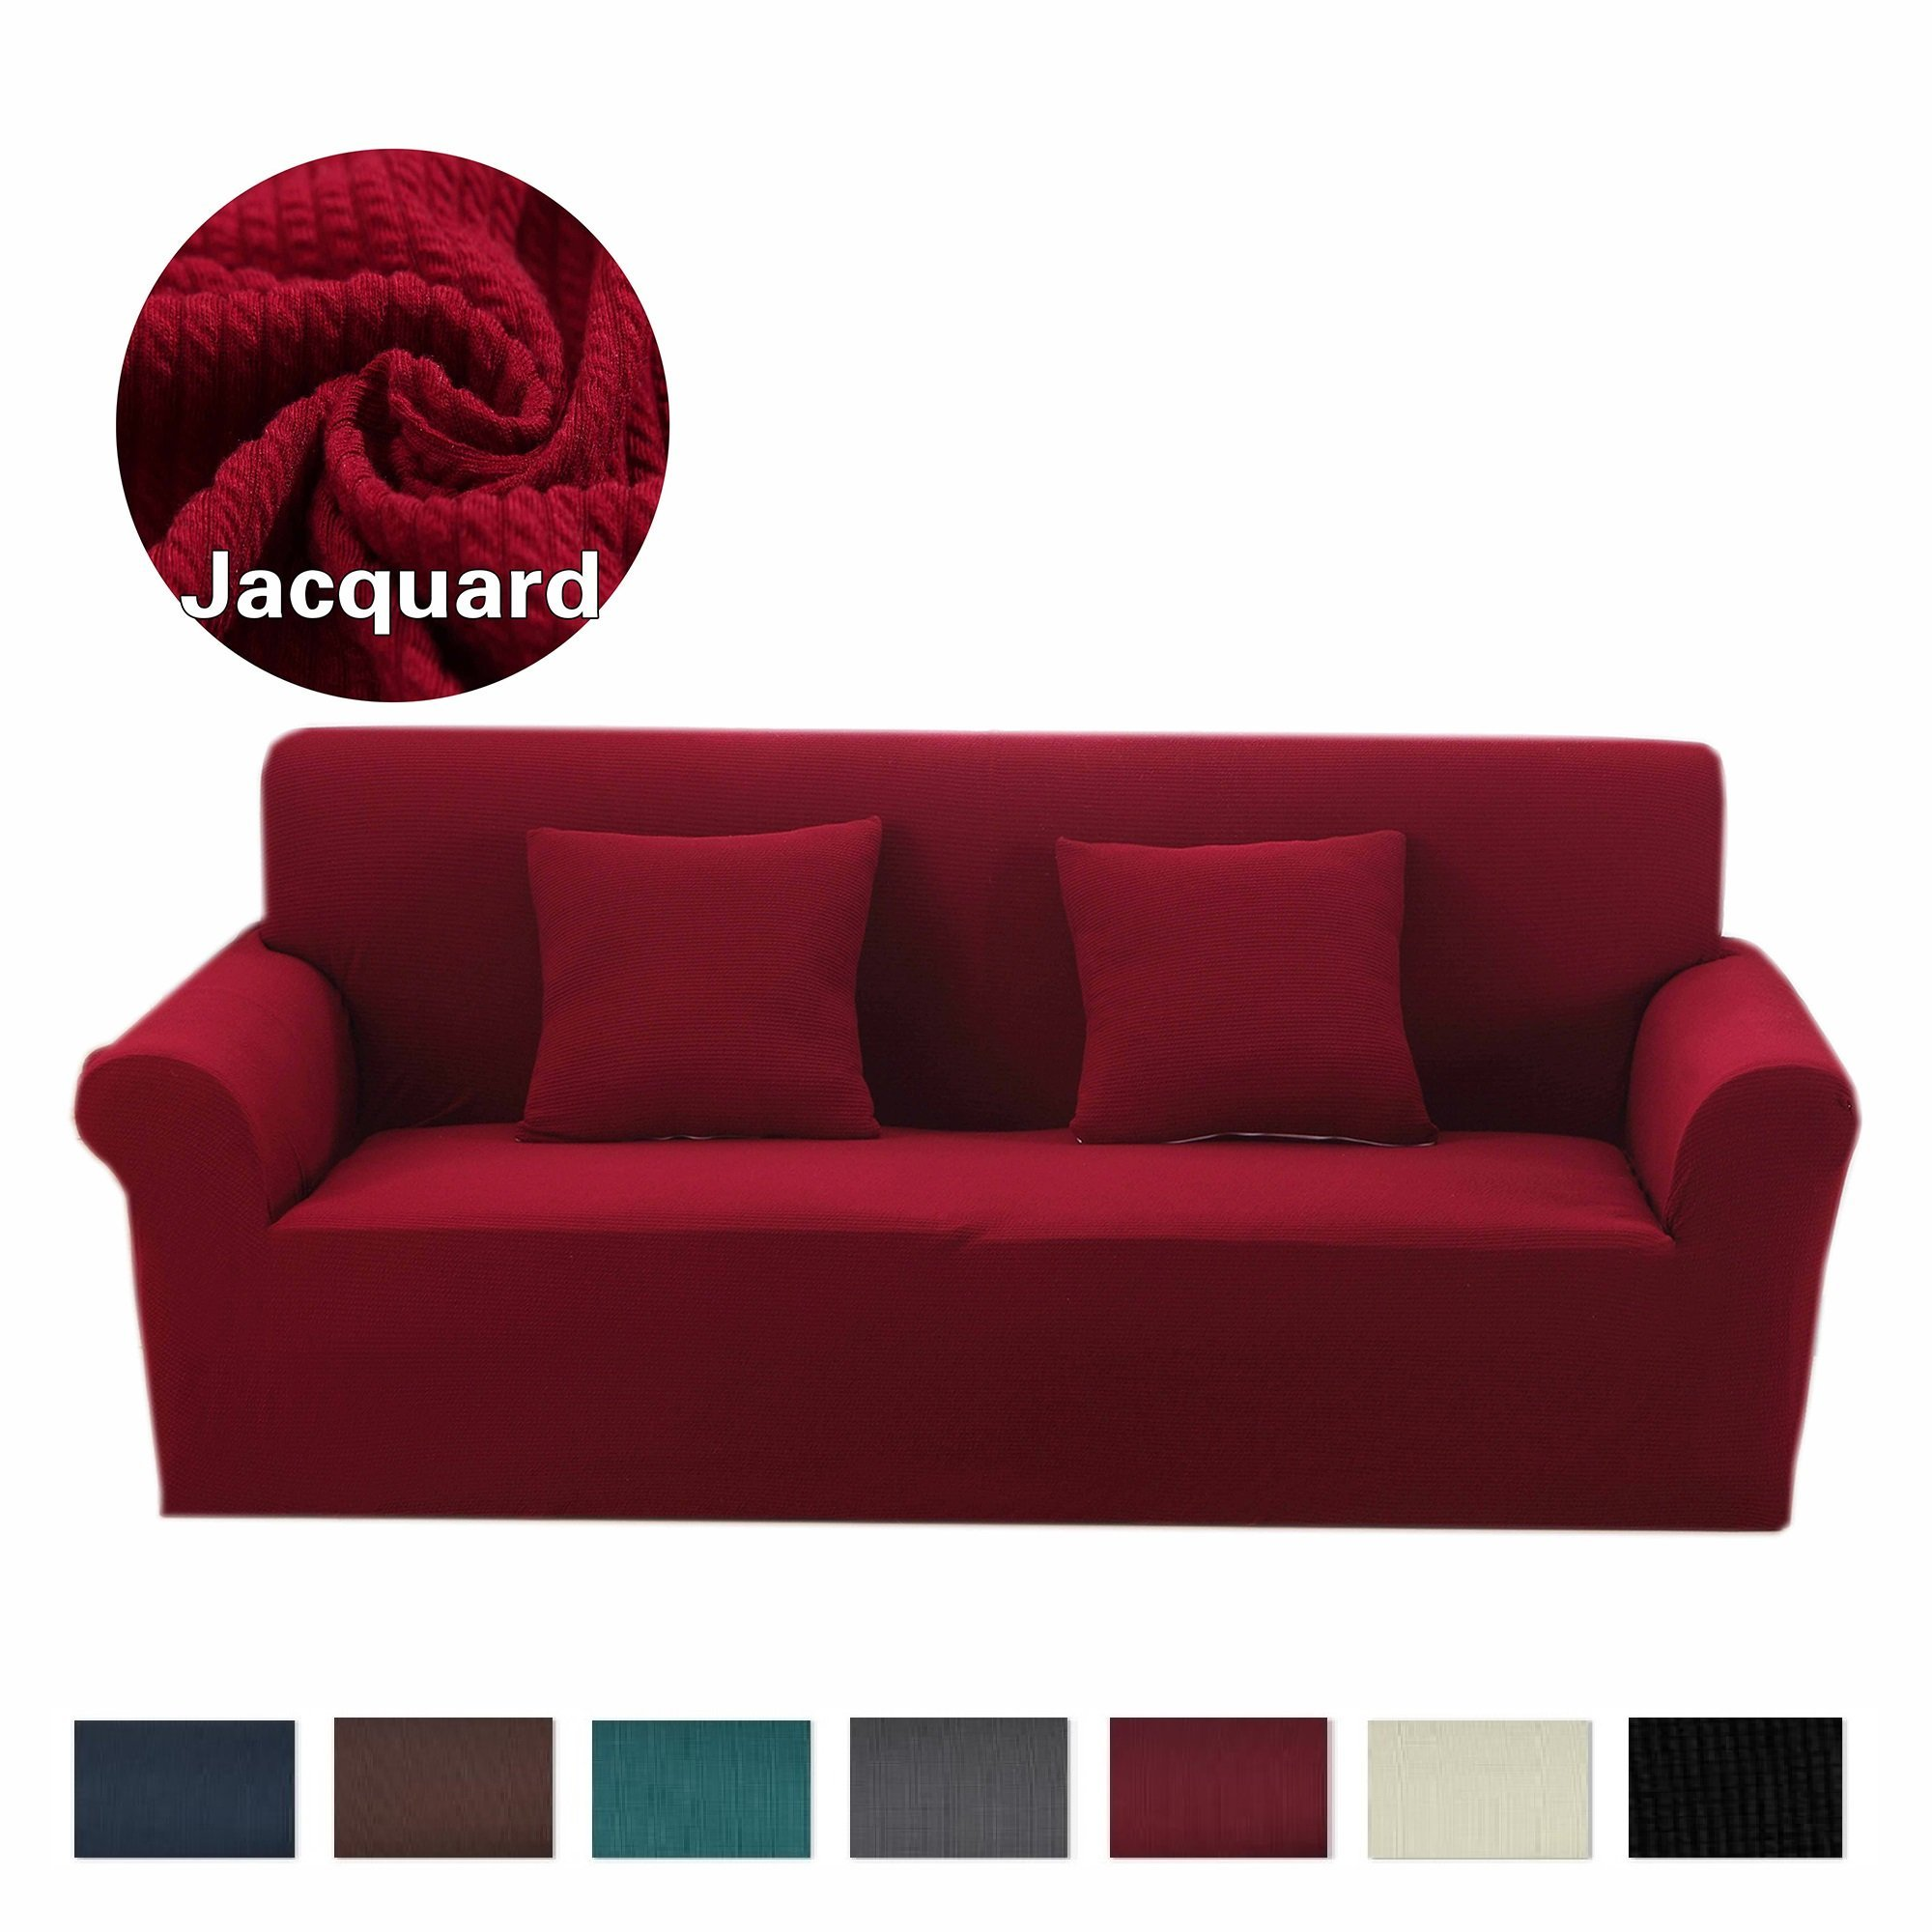 Argstar Premium Knit Loveseat Slipcover Elastic Cover Home Decor Wine Red Furniture Protector